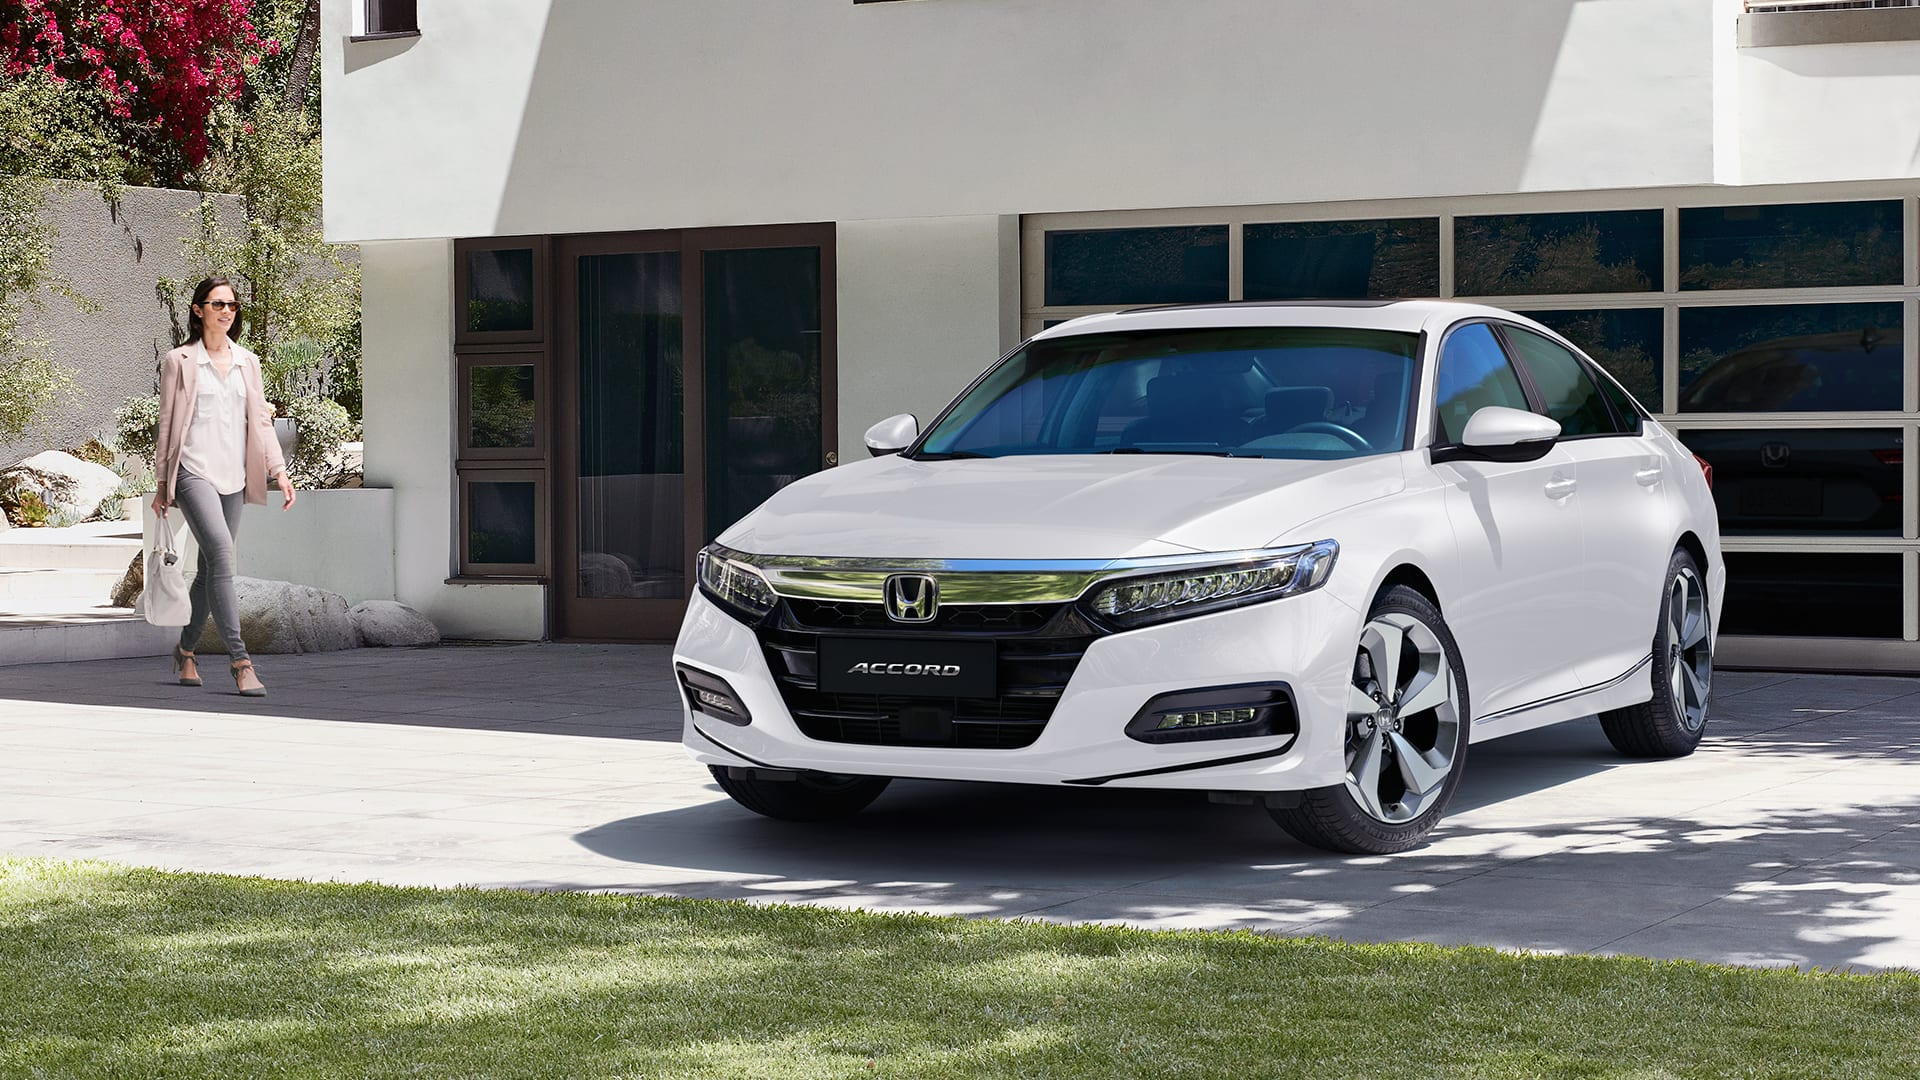 Honda Accord Touring - Design exclusivo